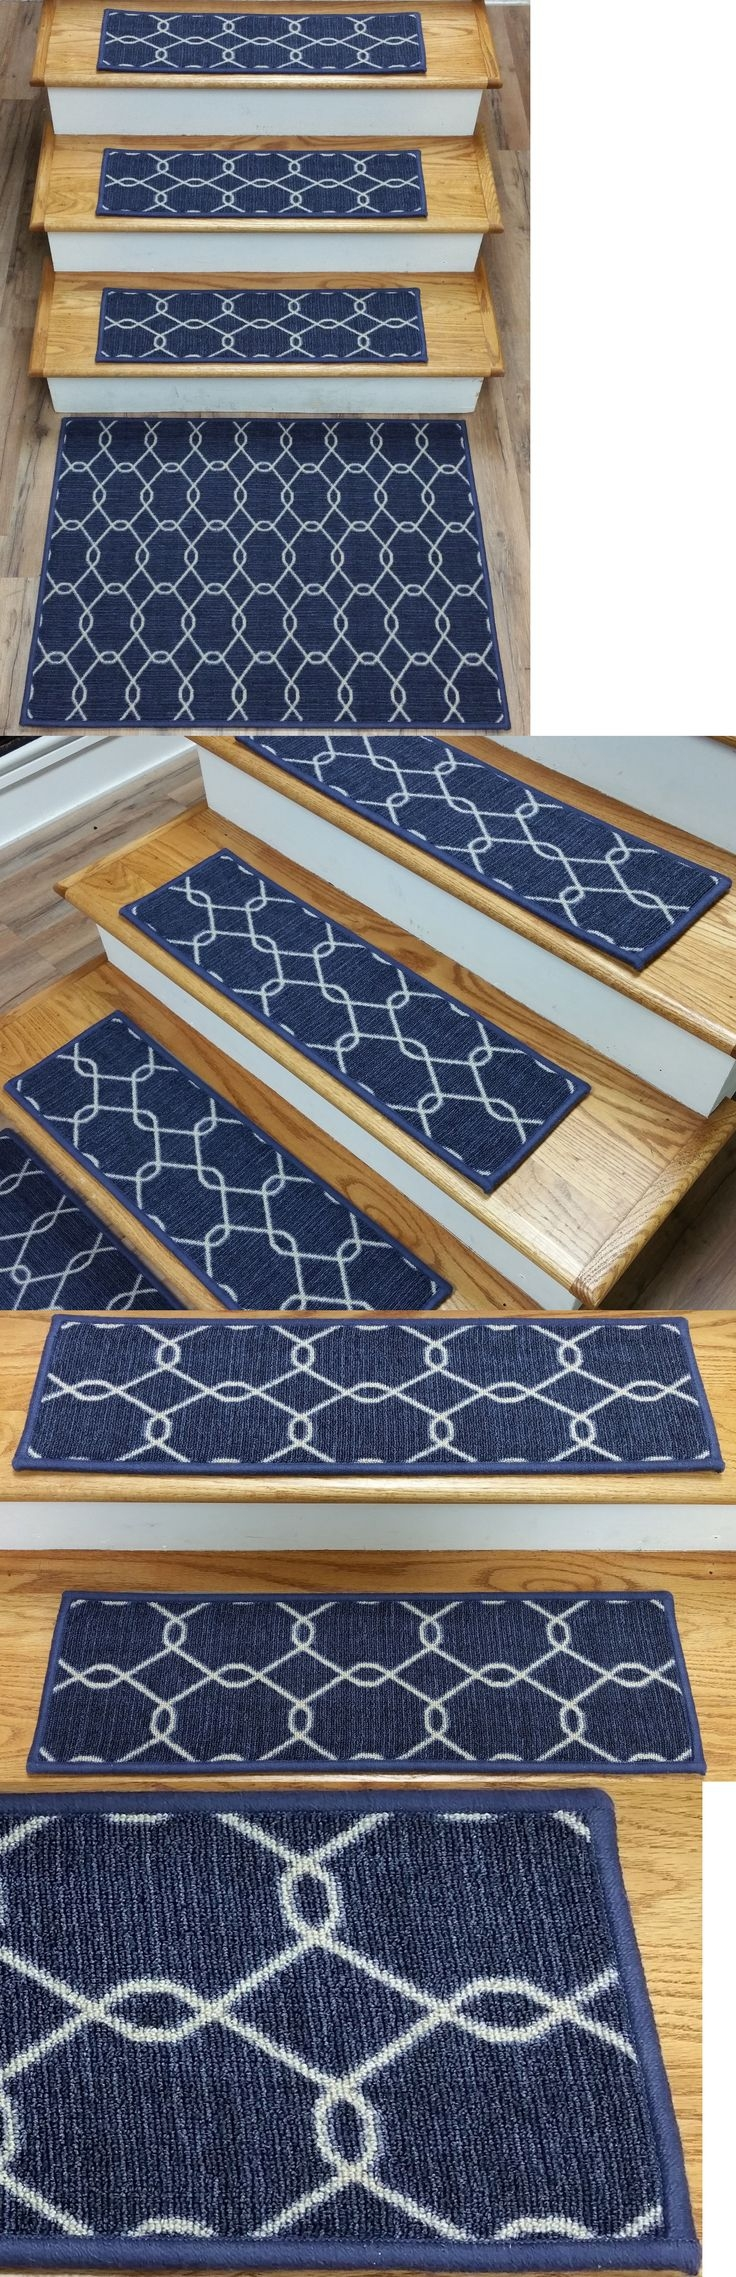 Top 25 Best Carpet Stair Treads Ideas On Pinterest Wood Stair Inside 8 Inch Stair Tread Rugs (#19 of 20)